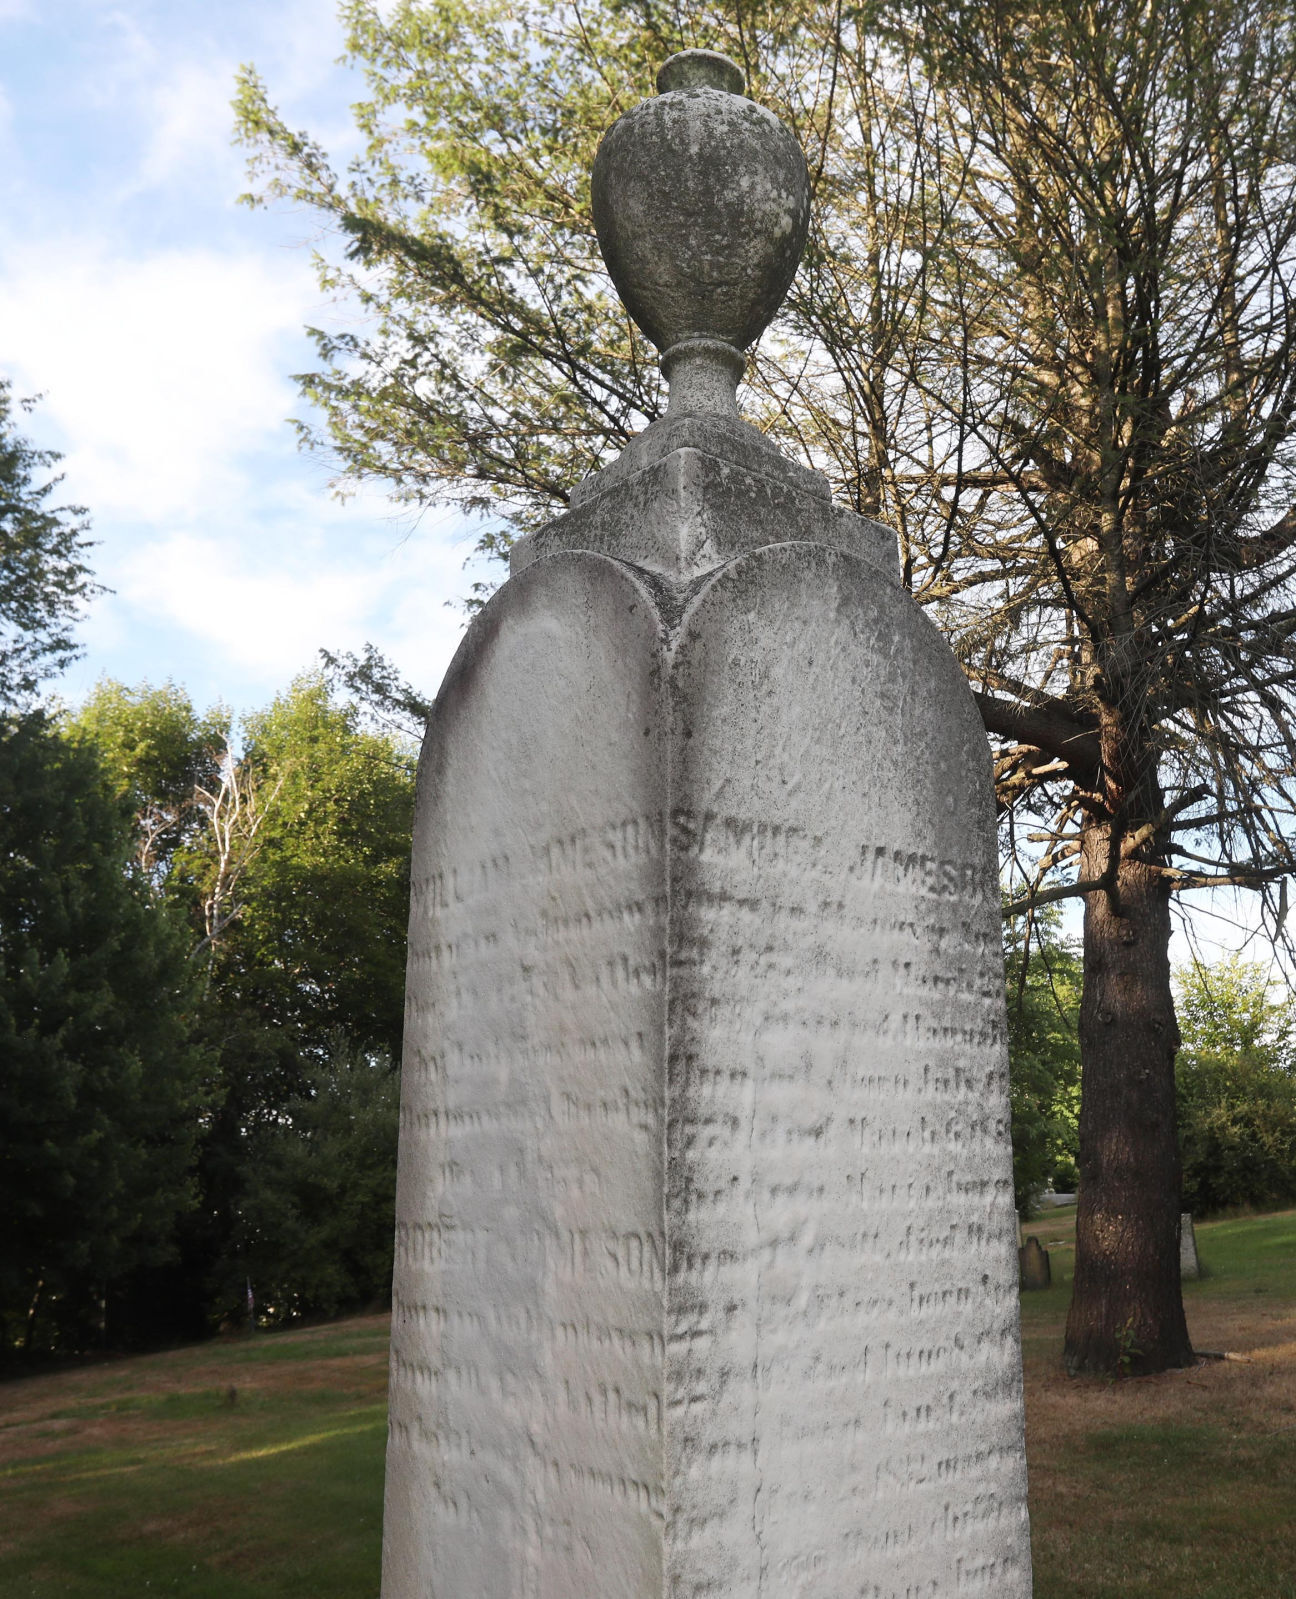 An early settler's sacrifice: DAR headstone remembers a turbulent period in local history